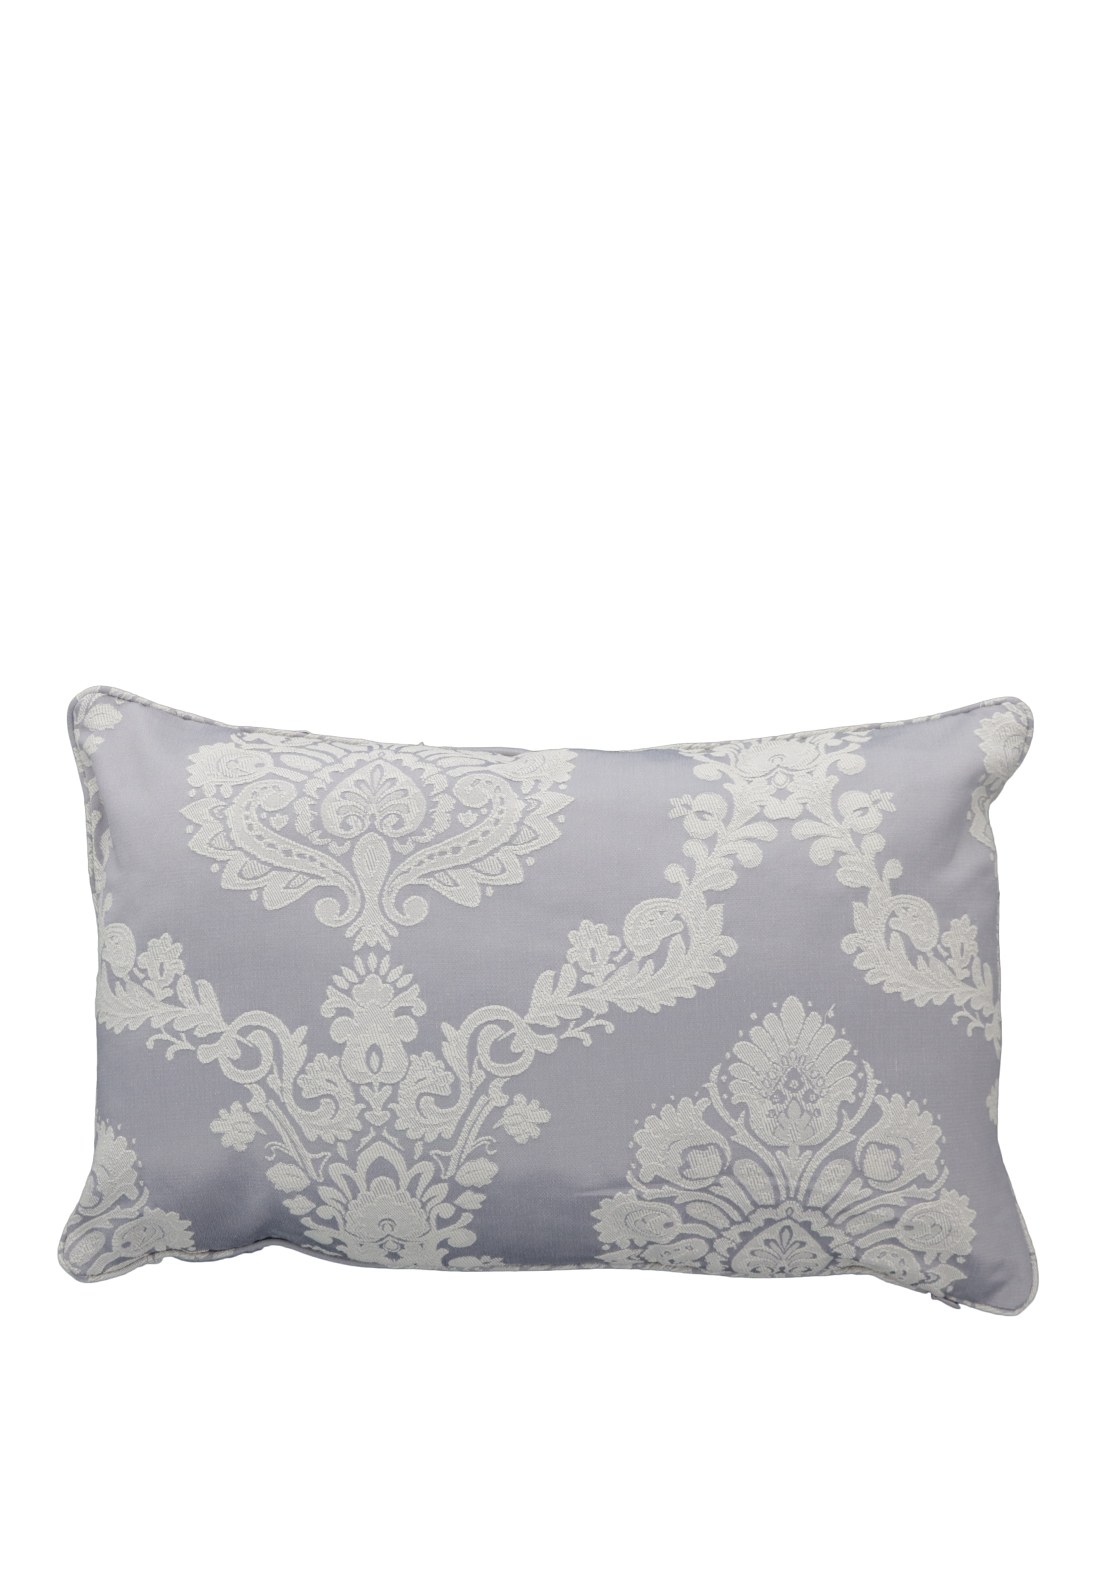 Christy Romeo Brocade Print Cushion, Lavender Grey